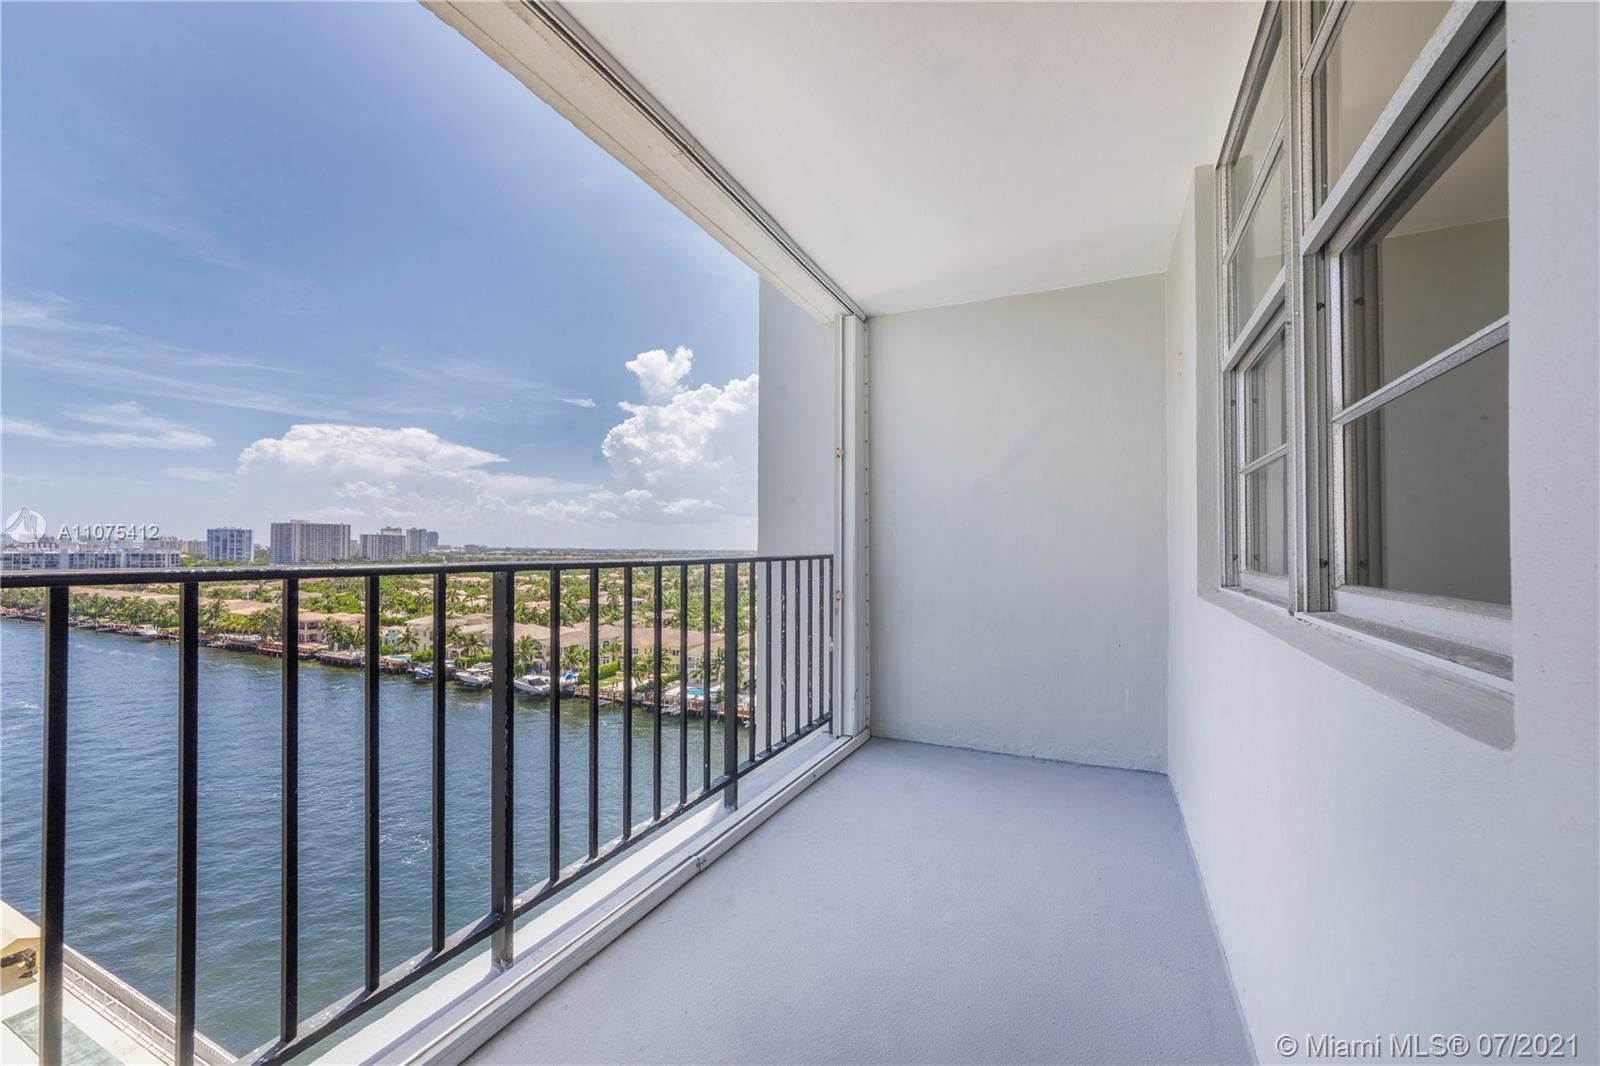 Photo of 1400 S Ocean Dr #1407, Hollywood, FL 33019 (MLS # A11075412)